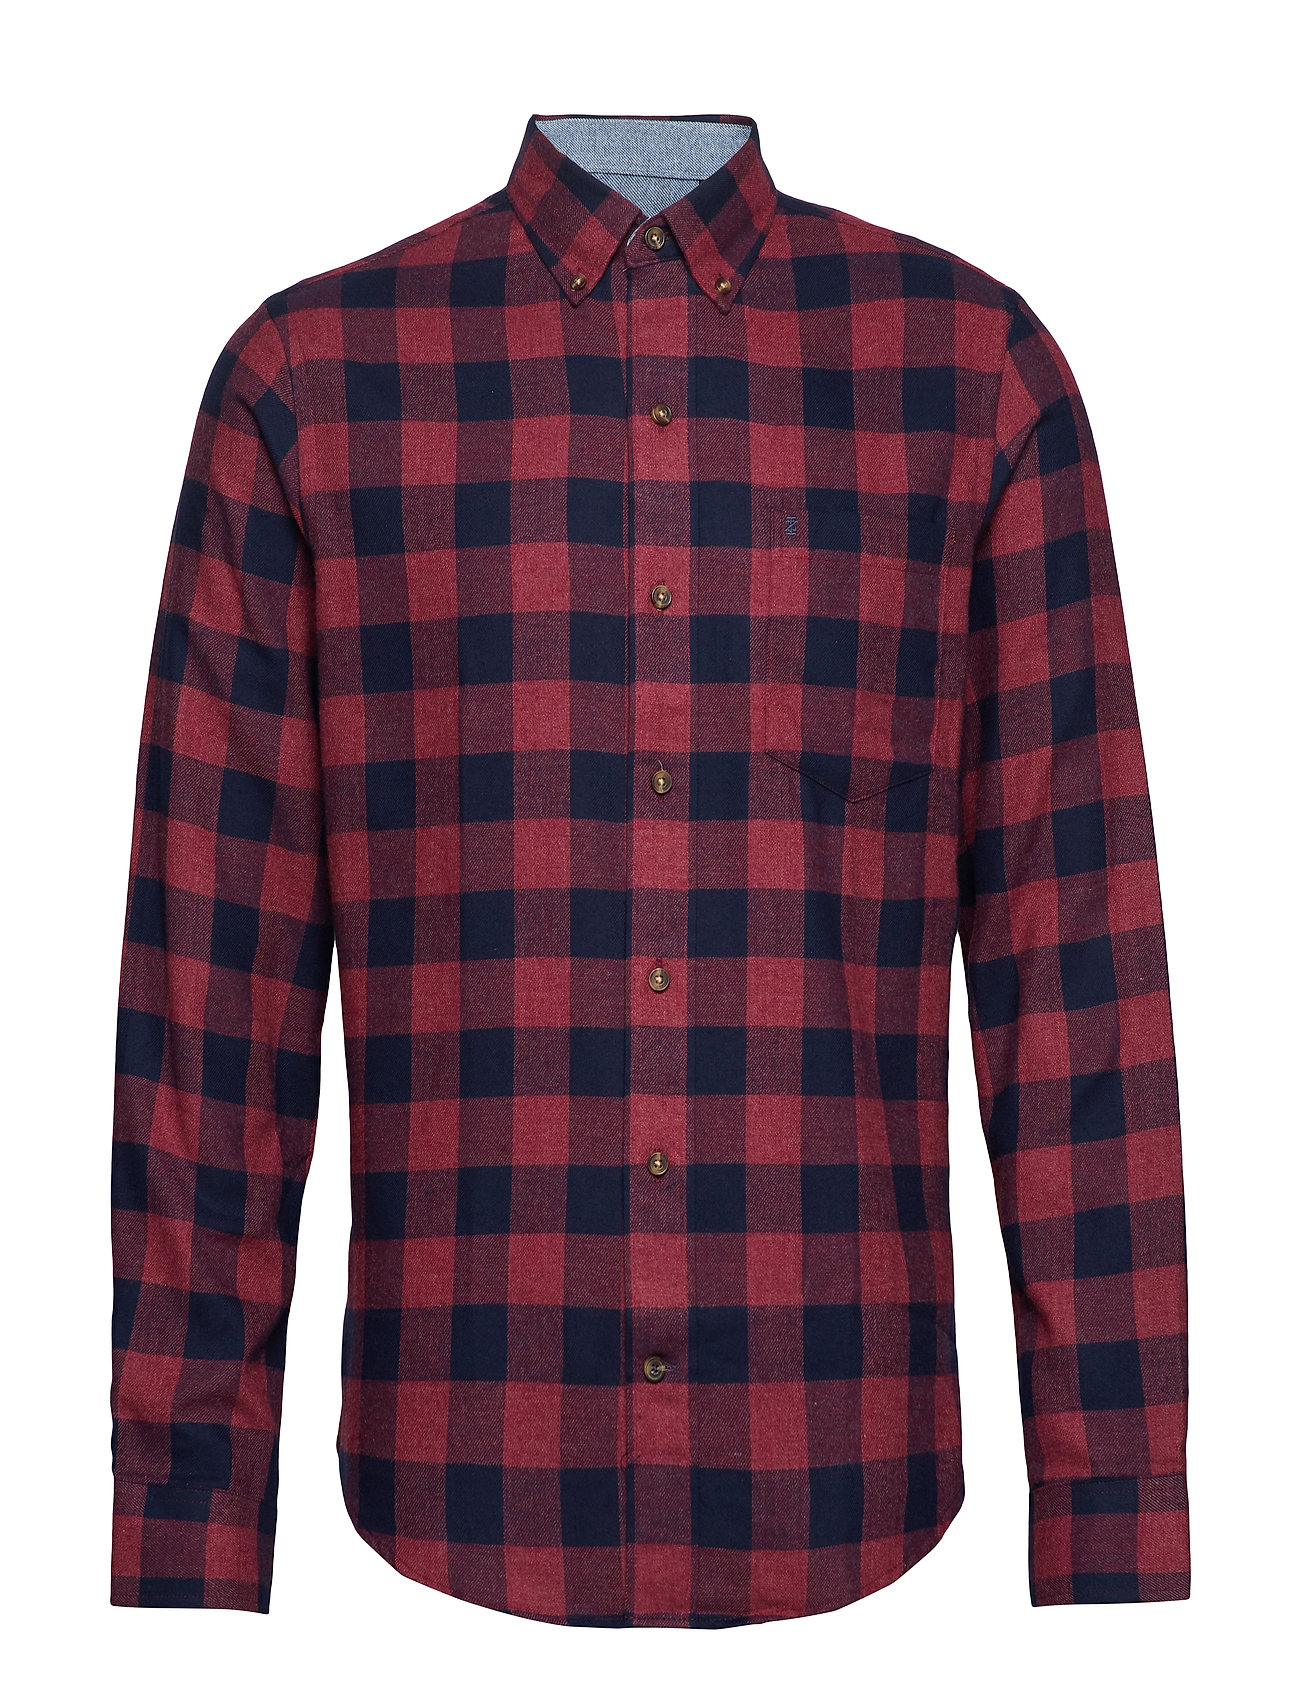 IZOD FLANNEL PLAID BD SHIRT - BIKING RED HTR